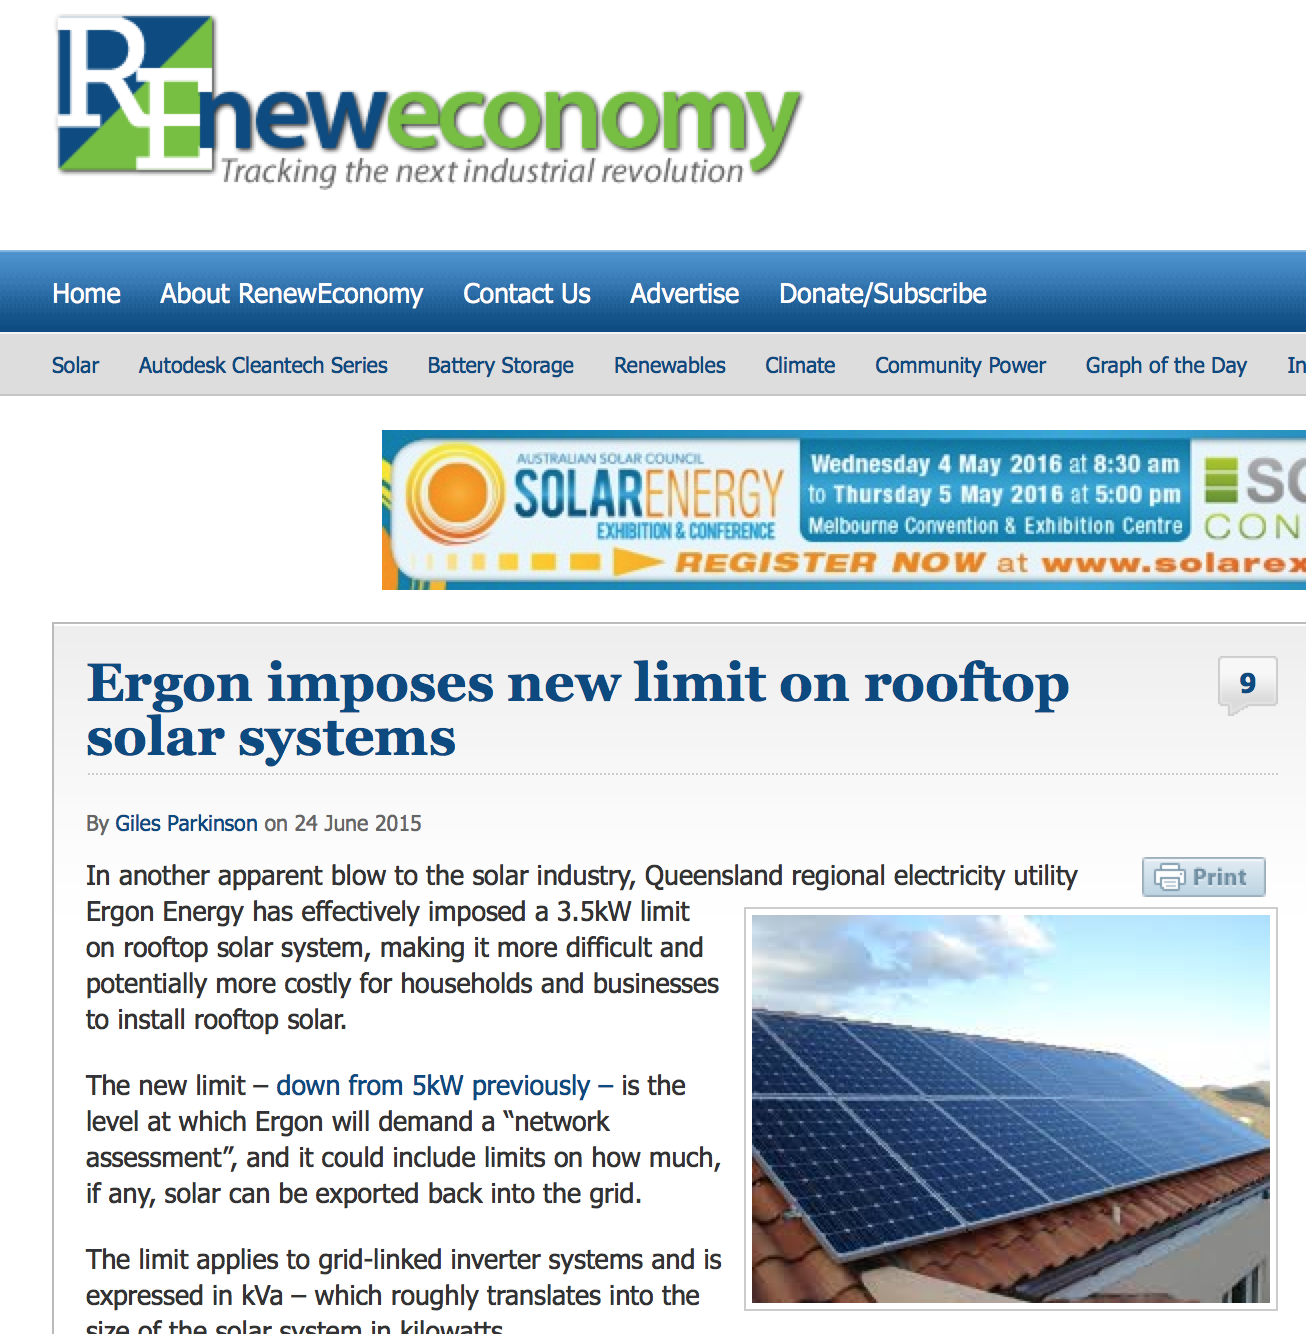 Ergon is limiting the size of individual solar PV systems on parts of their distribution network